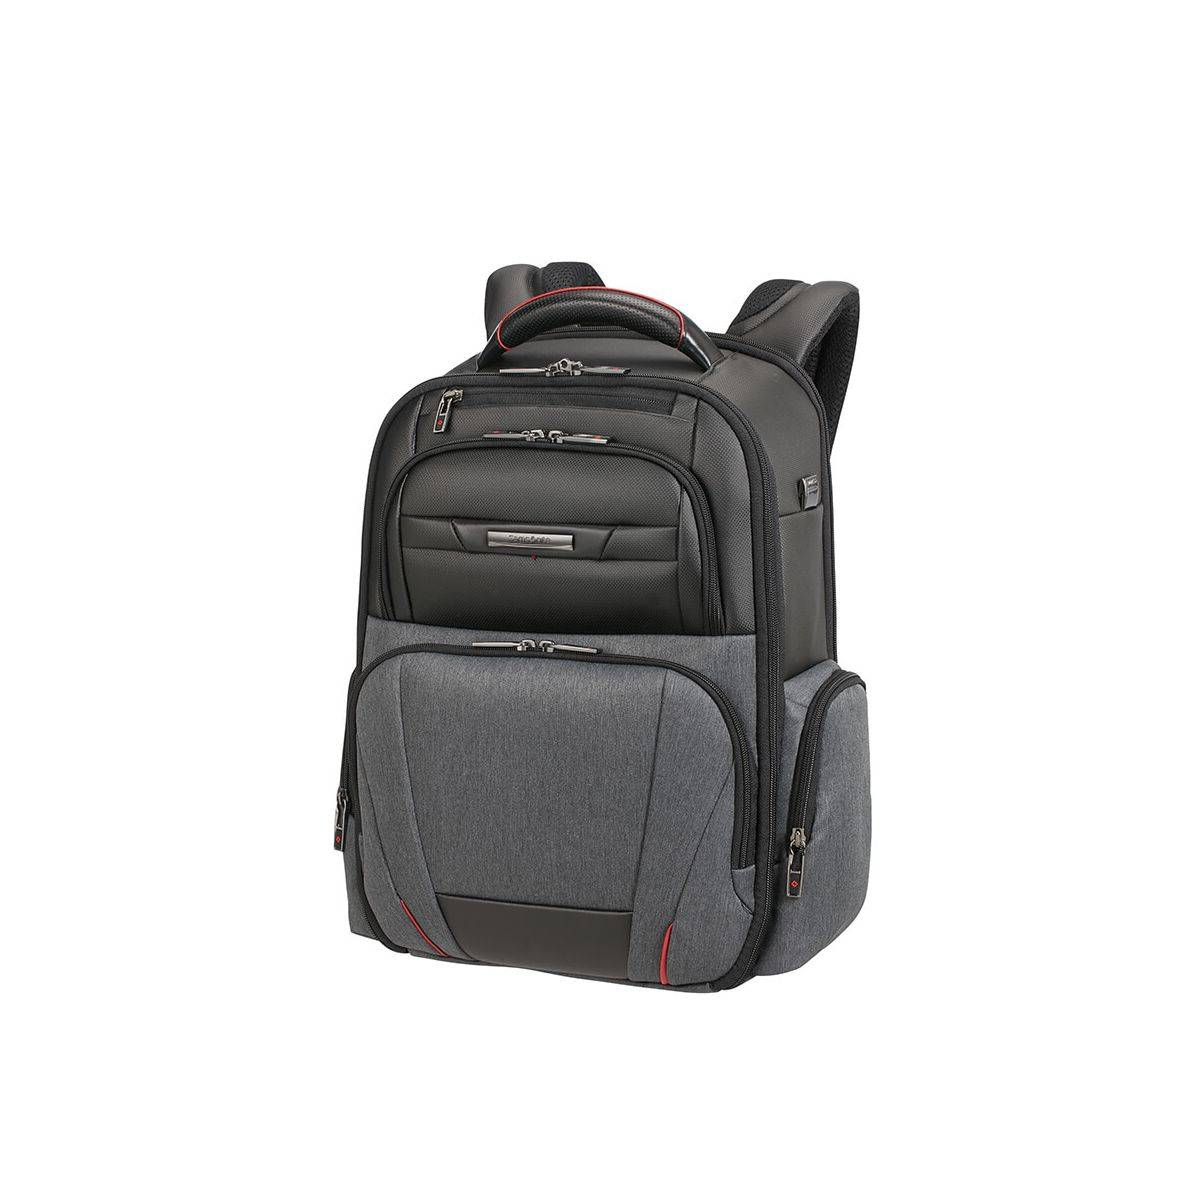 construction rationnelle couleur n brillante haut fonctionnaire Samsonite - Sac à dos business homme 20 litres ordinateur 15